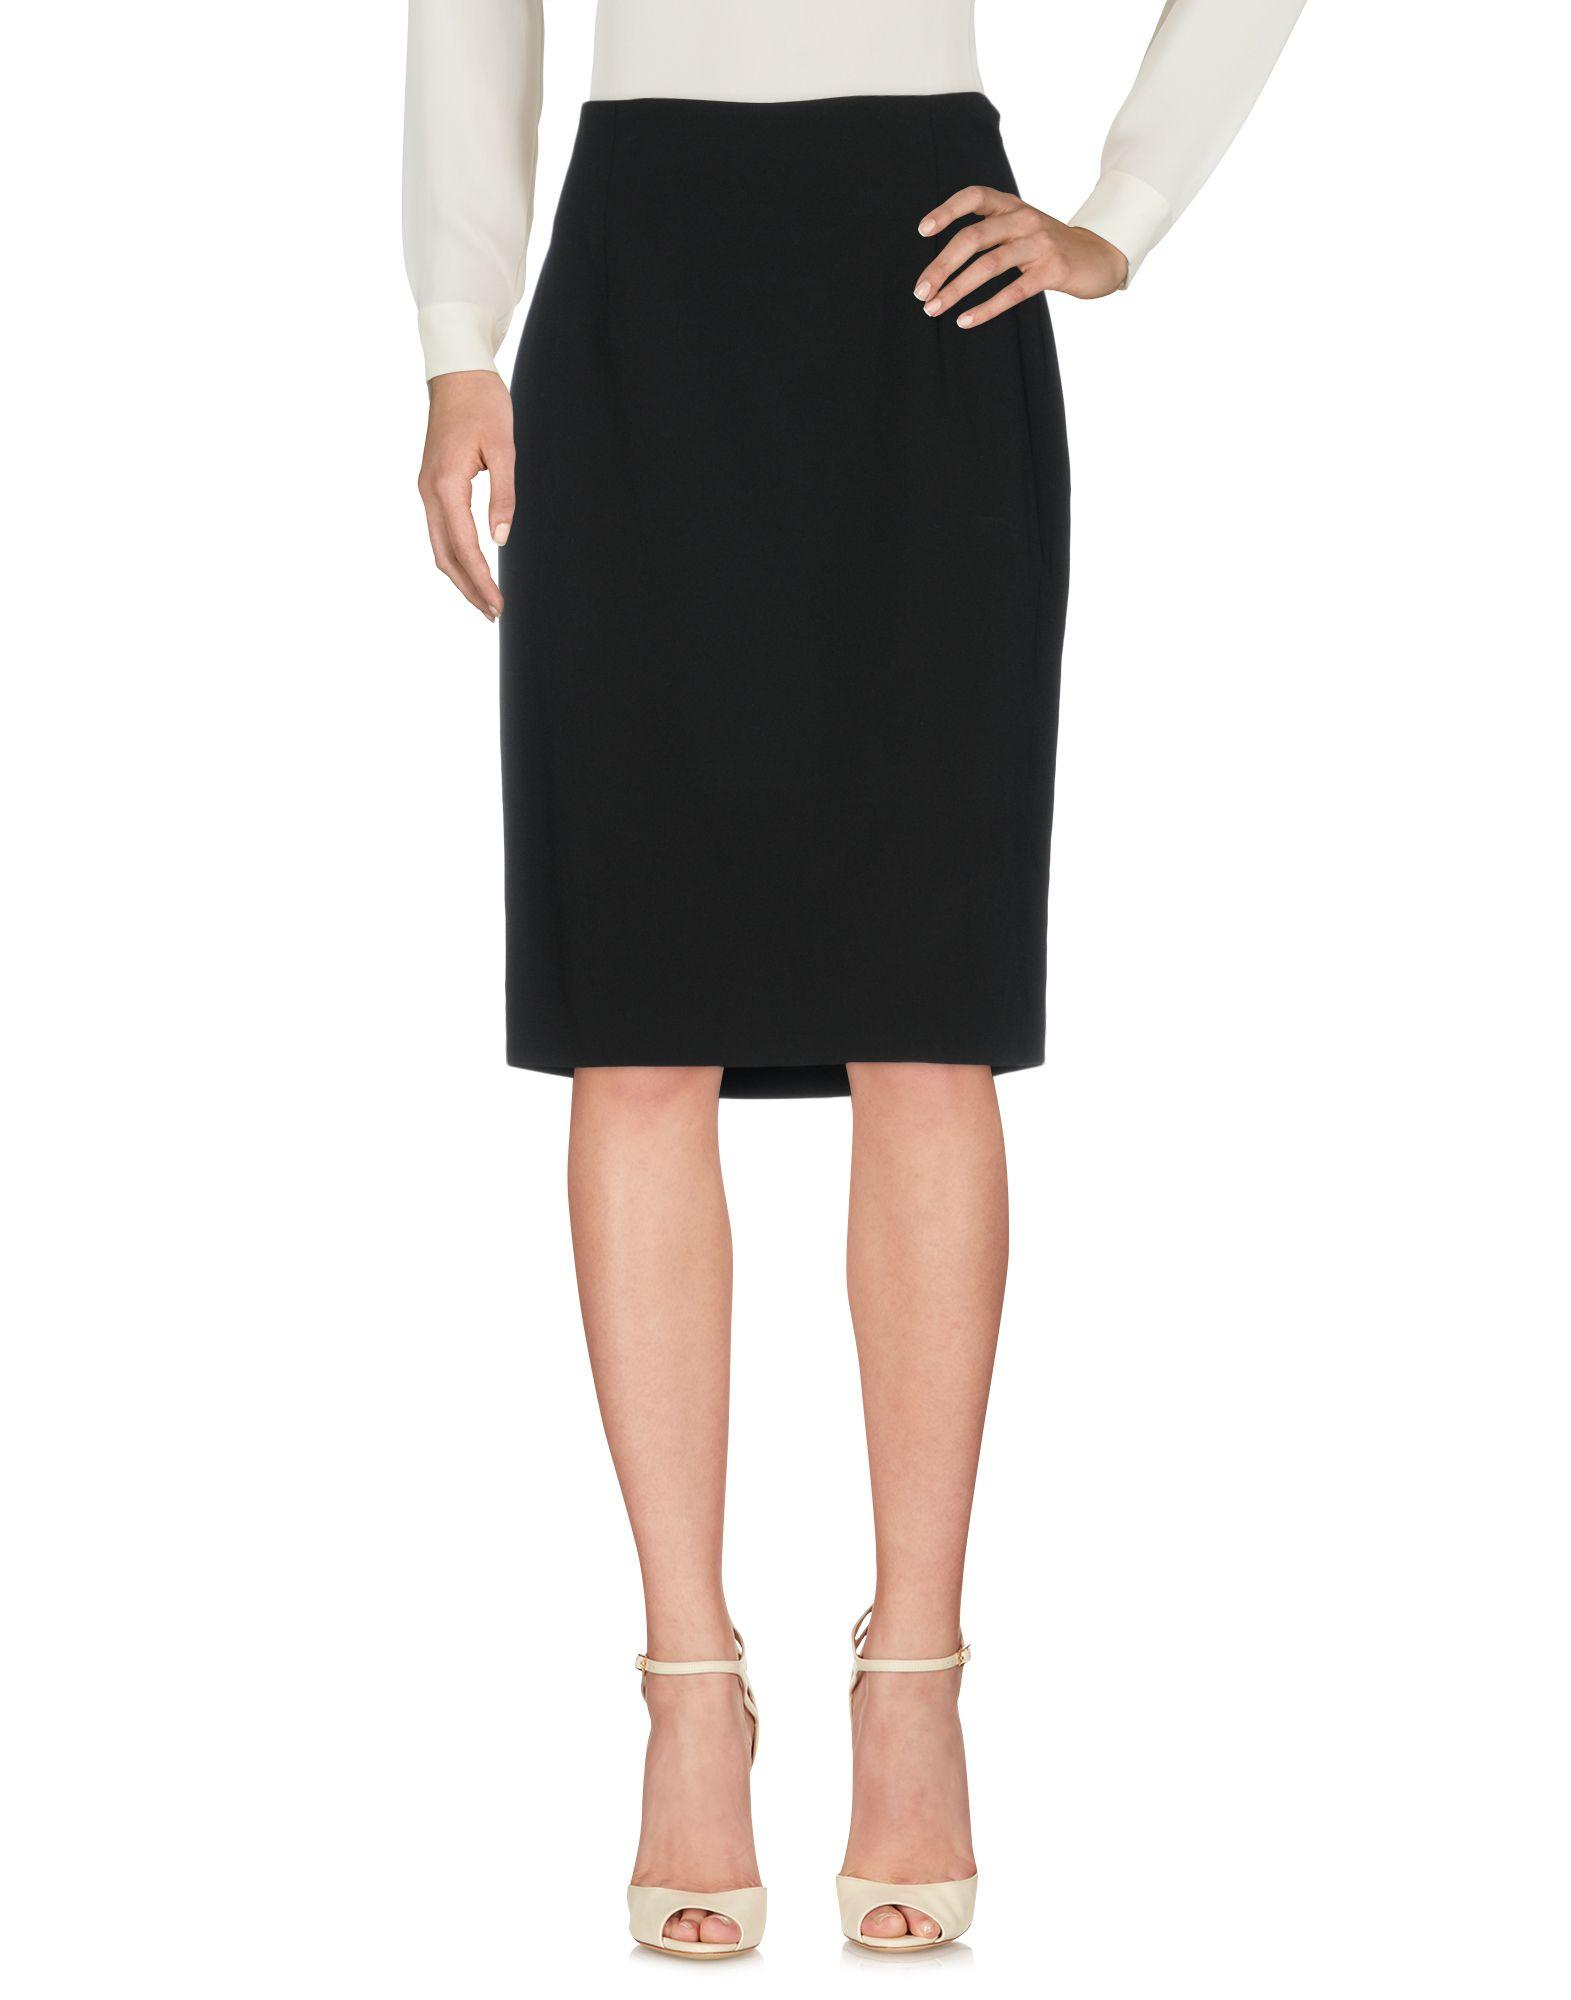 Moschino Cheap And Chic Knee Length Skirt In Black